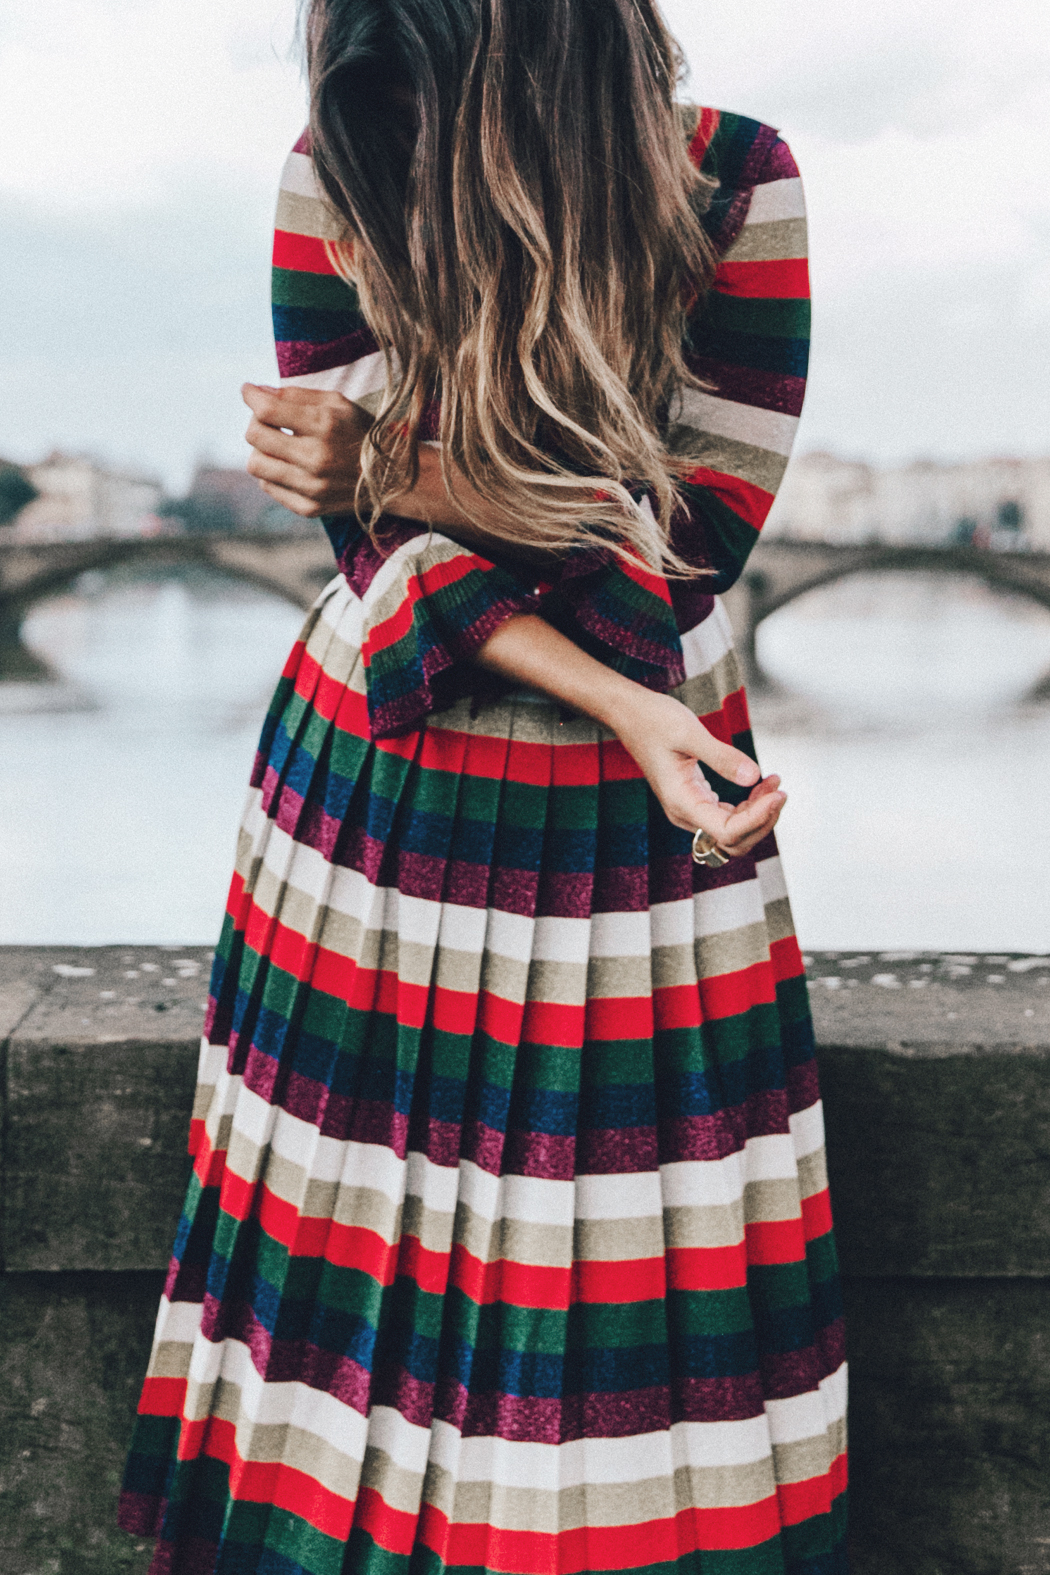 Firenze4Ever-Luisa_VIa_Roma-Gucci_Striped_Dress-Gucci_Gold_Sandals-Outfit-Florence-Street_Style-46